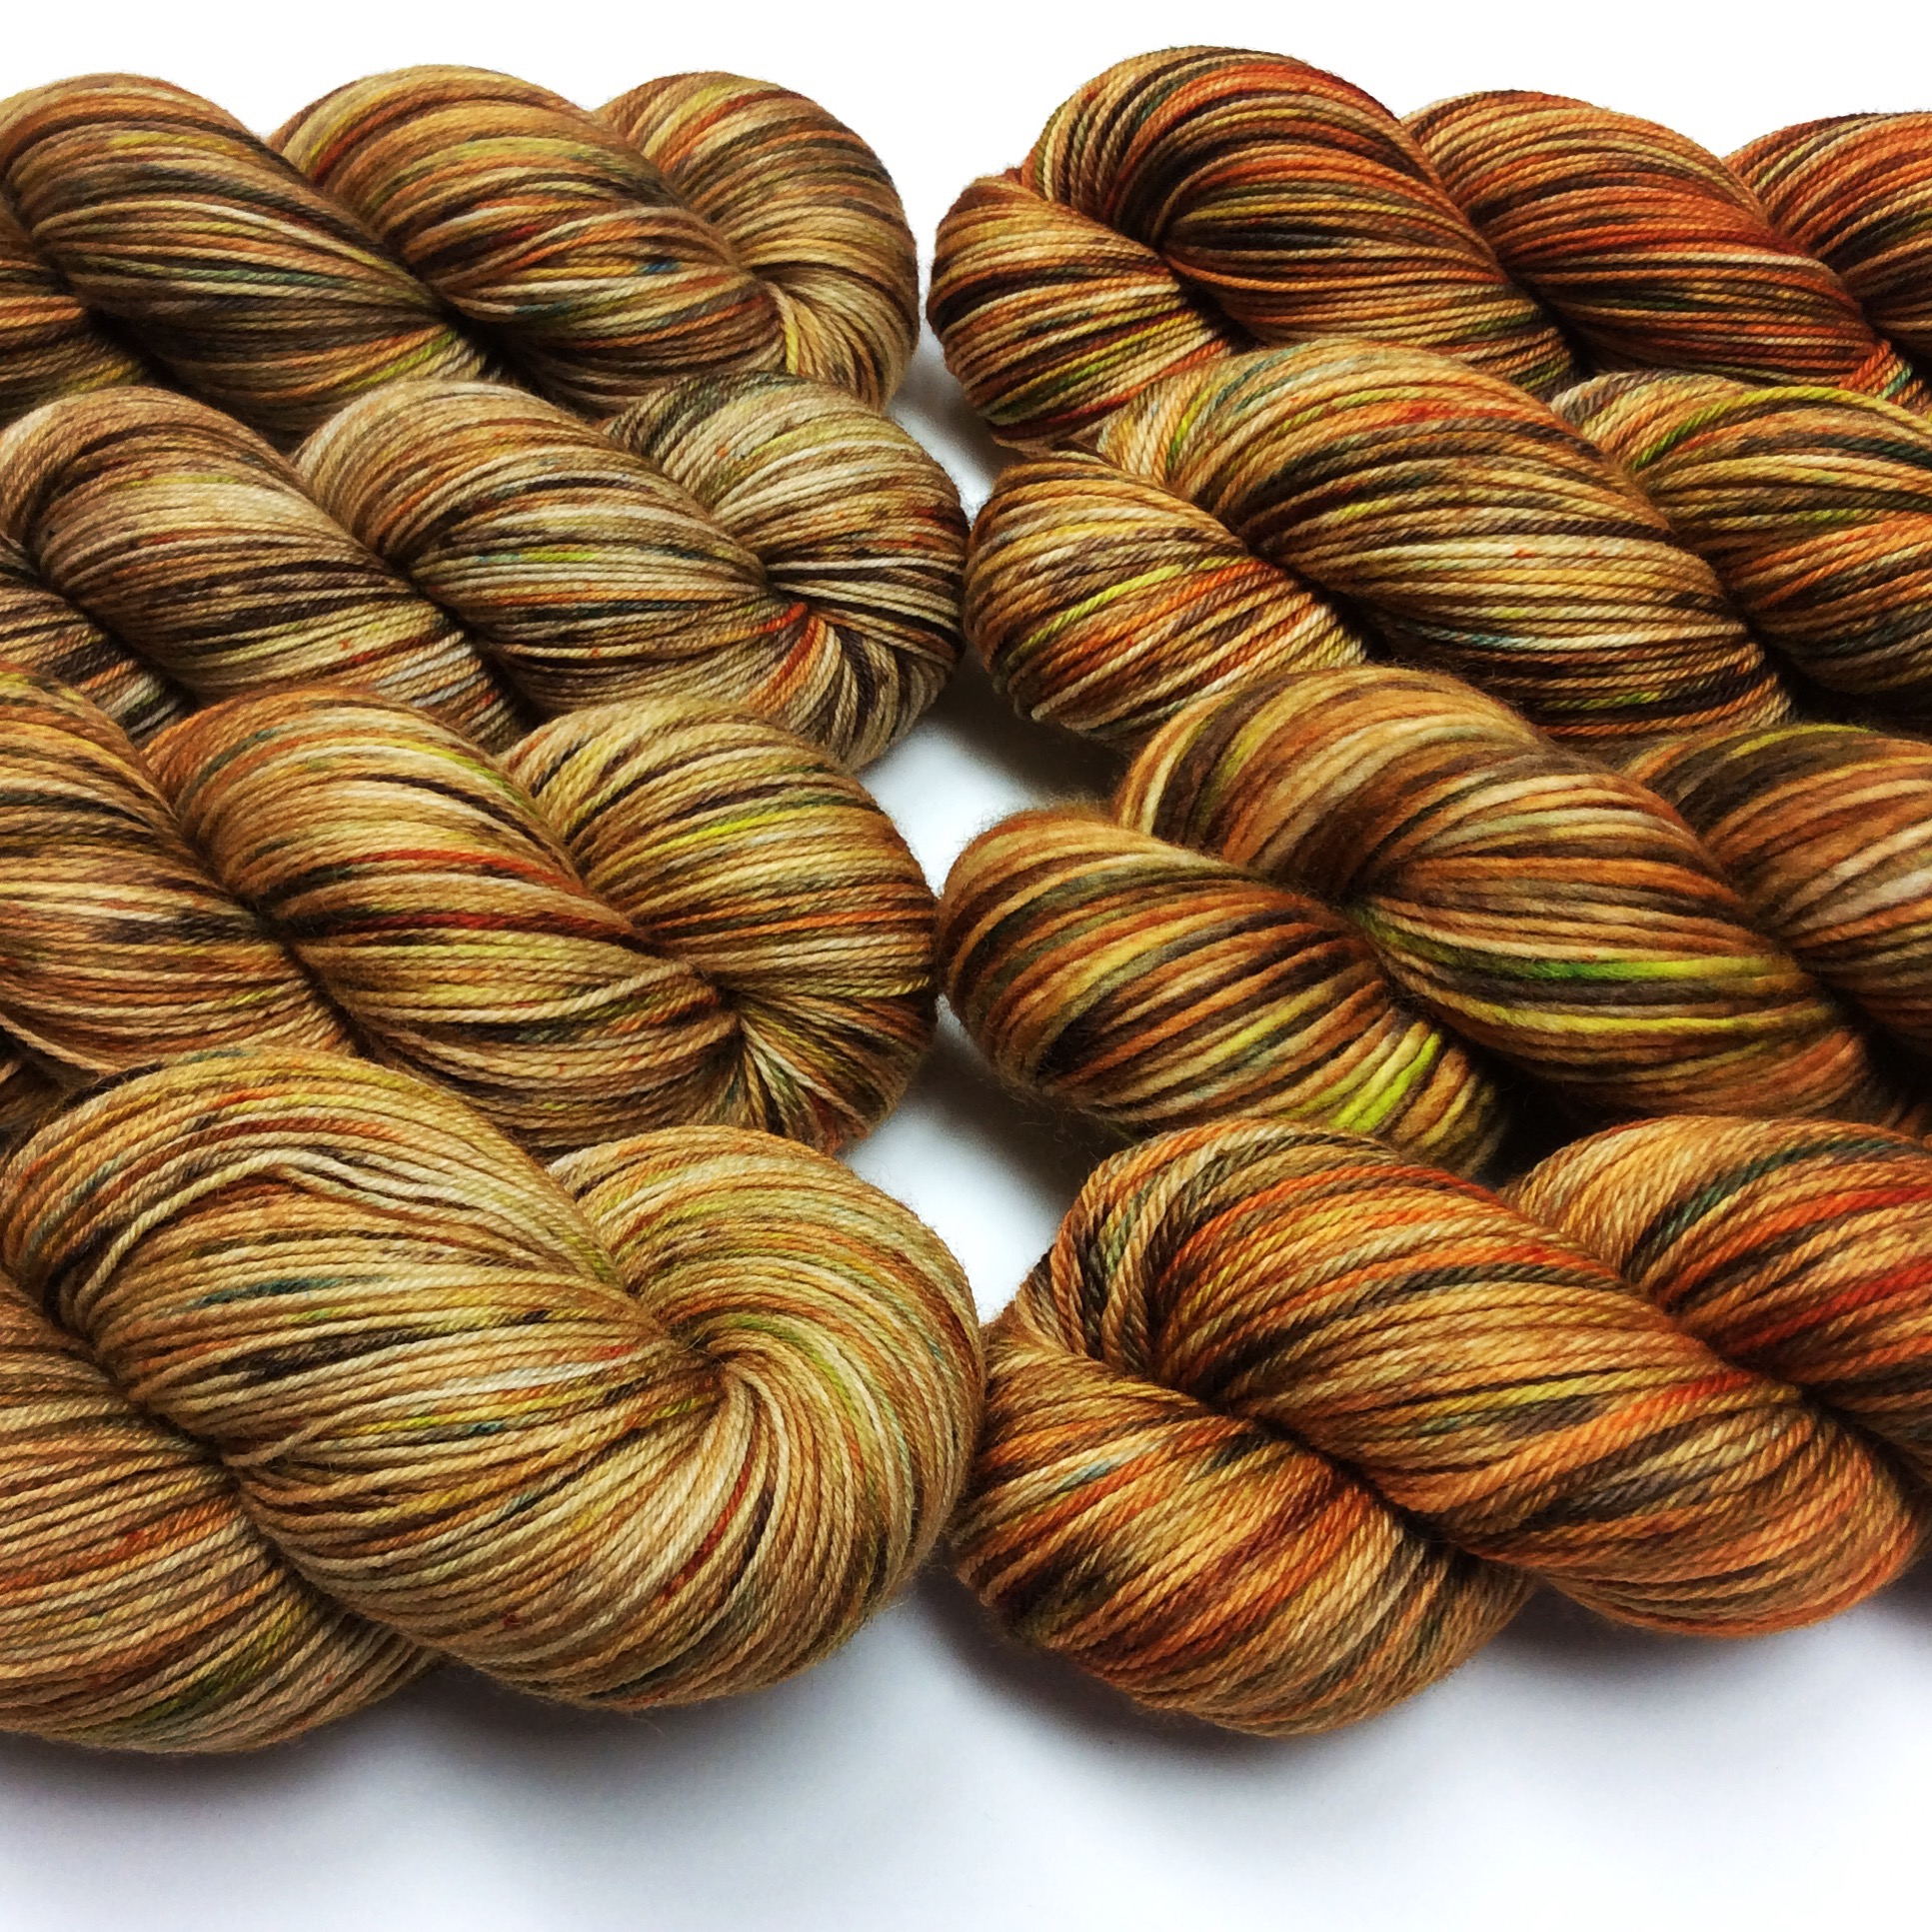 This Turkey Run colourway perfectly encapsulates seasonal colours